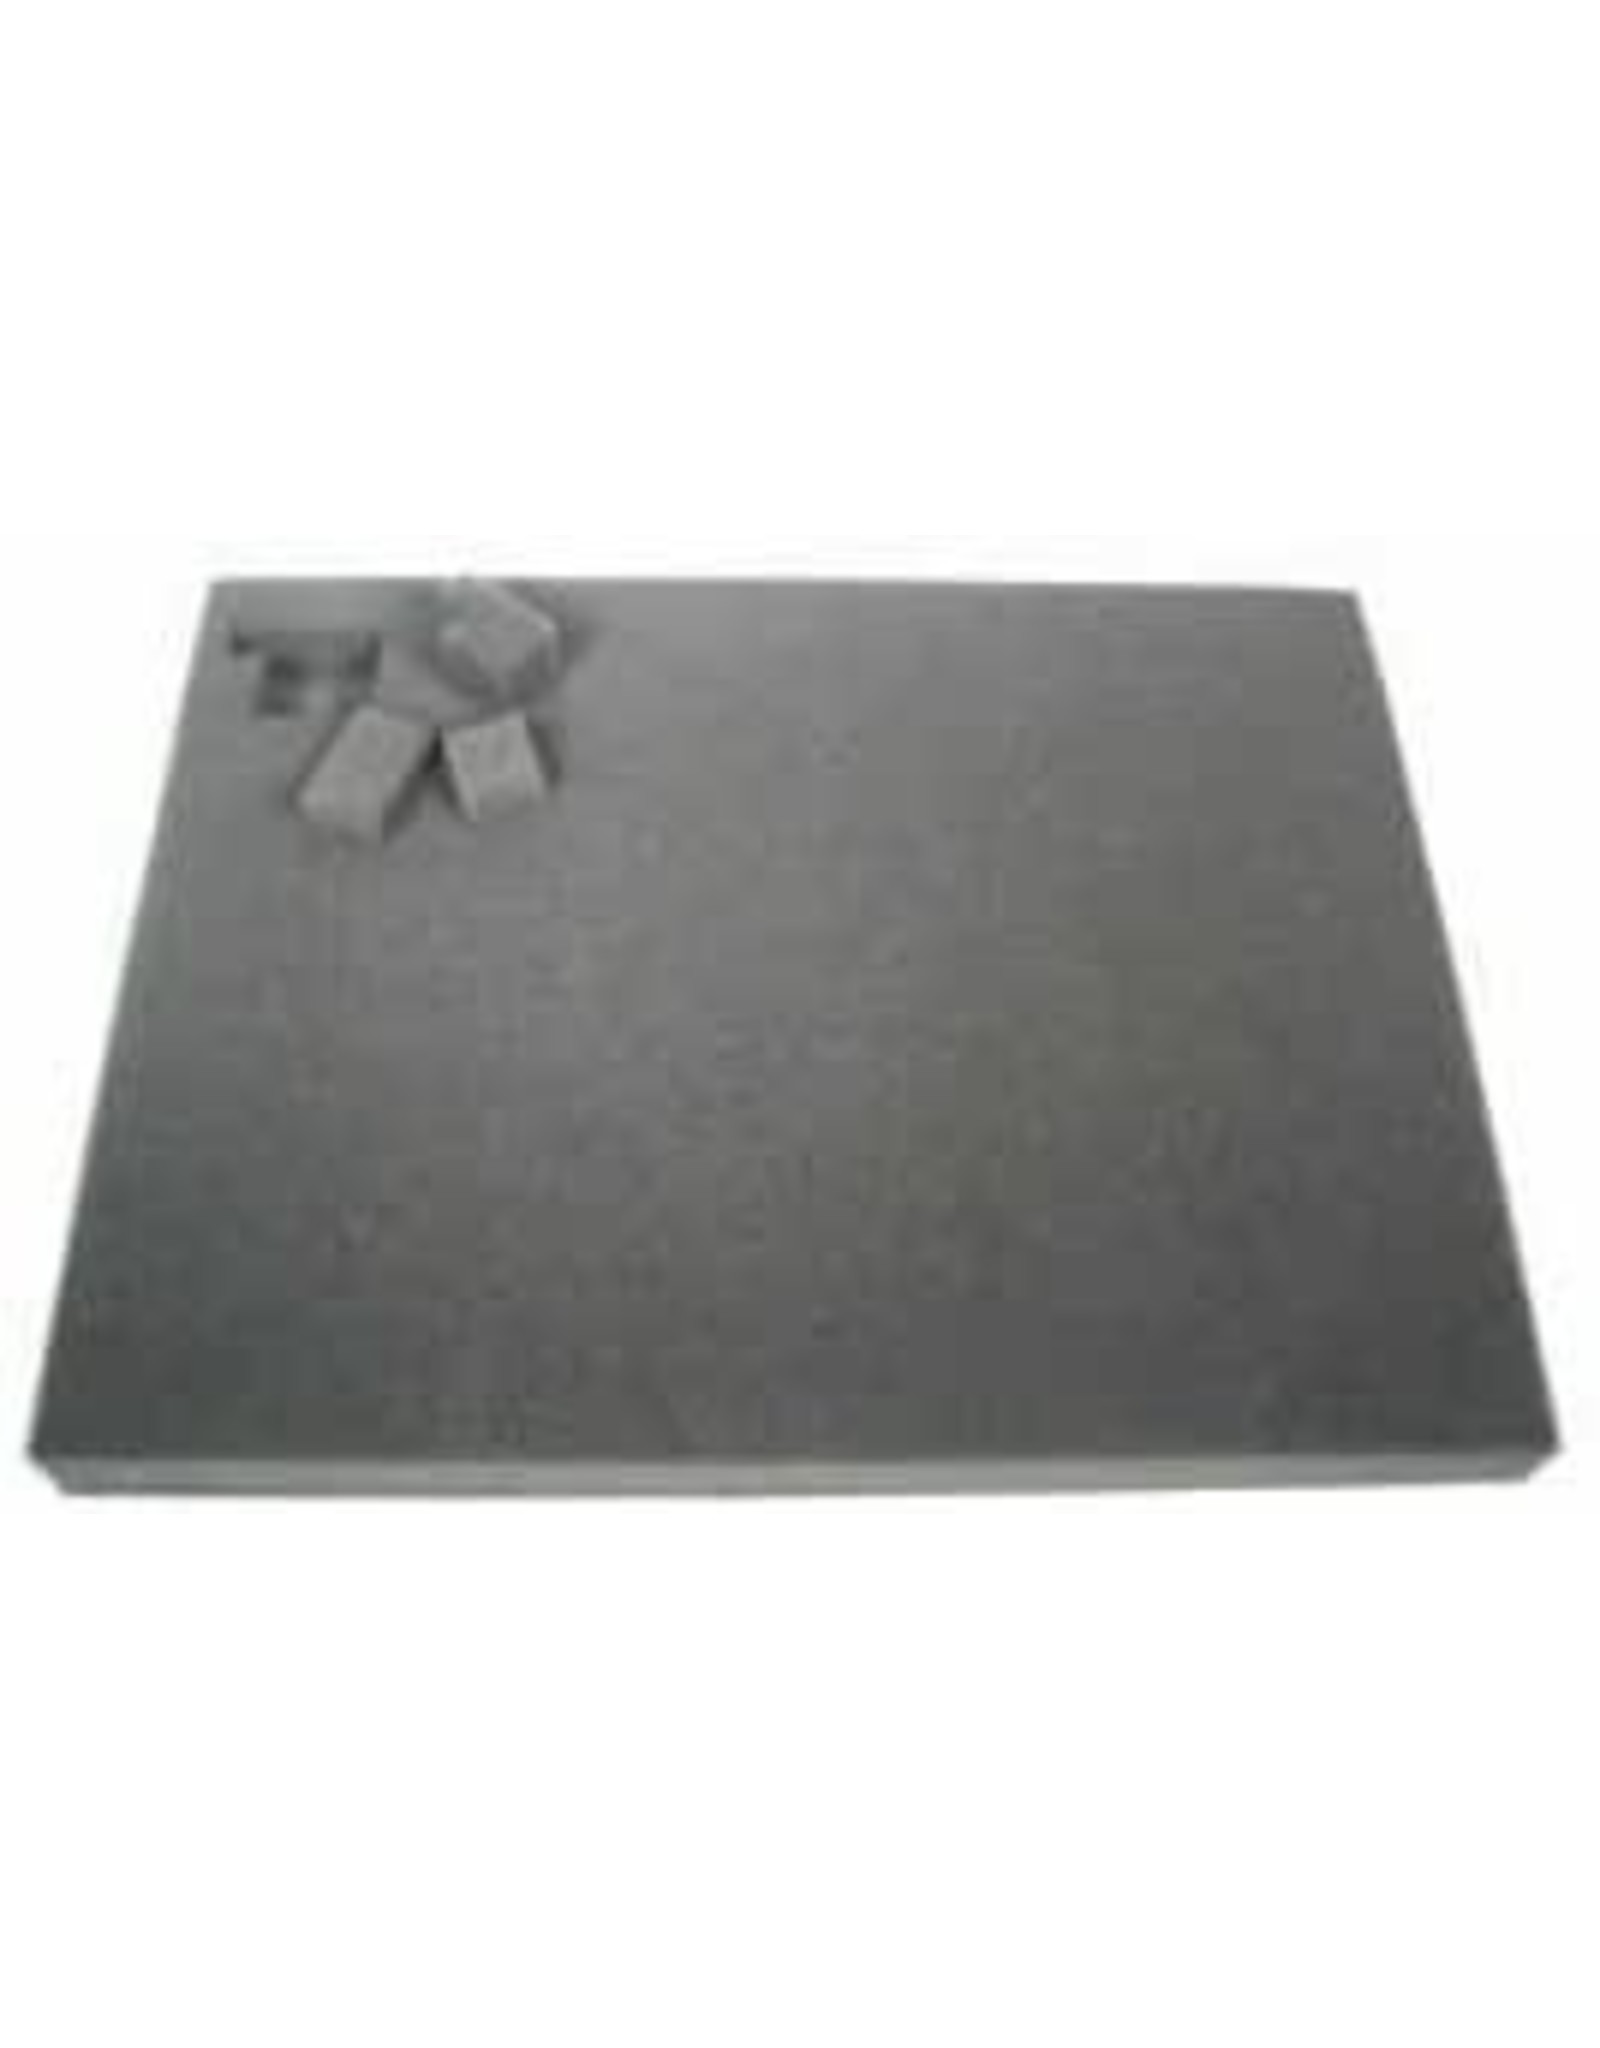 Battle Foam Battle Foam Large Pluck Foam Tray 3in